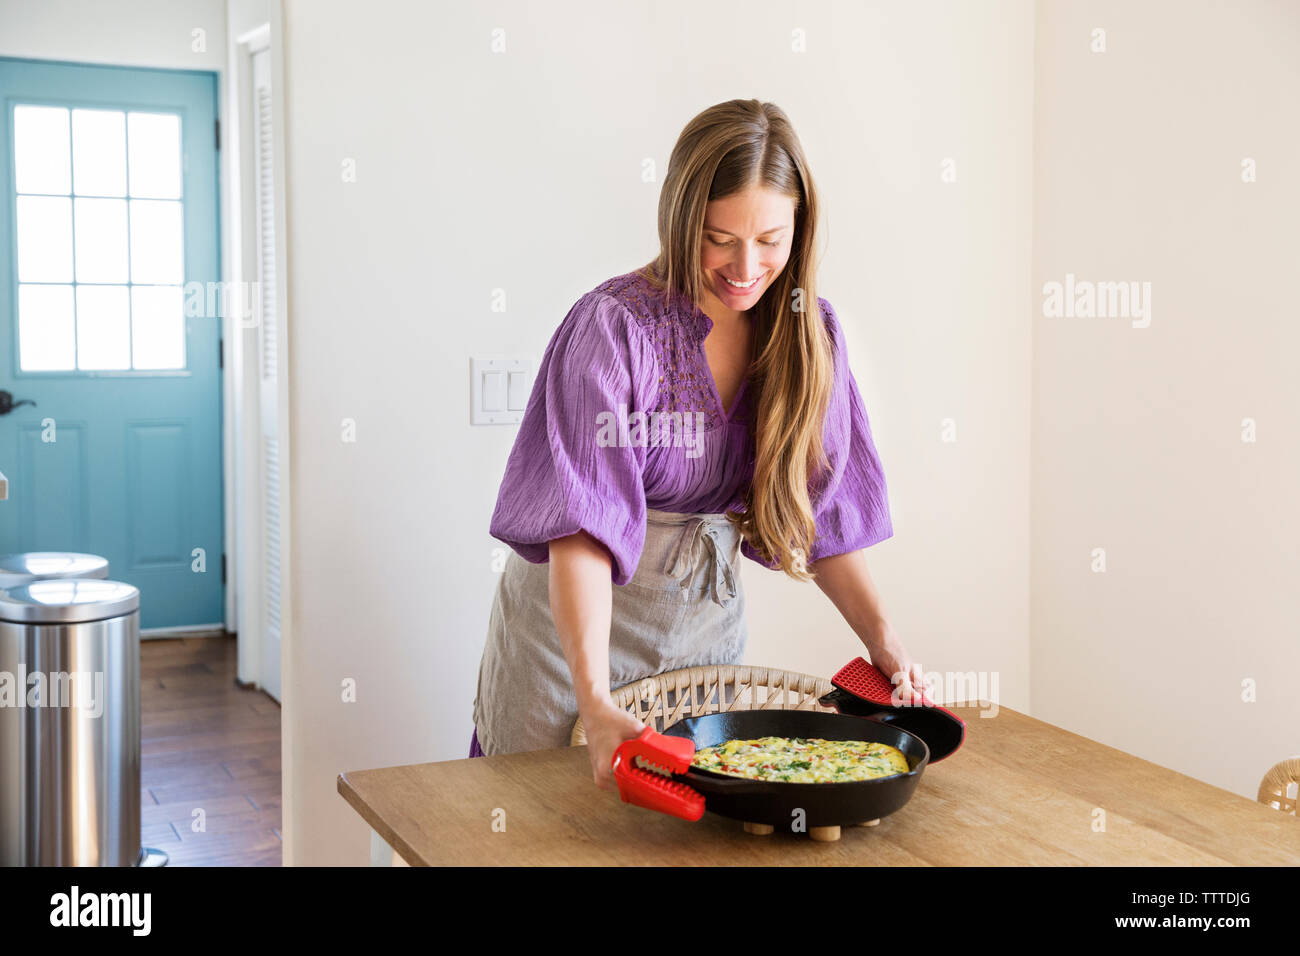 Happy woman holding hot cooking pan with omelet on table - Stock Image